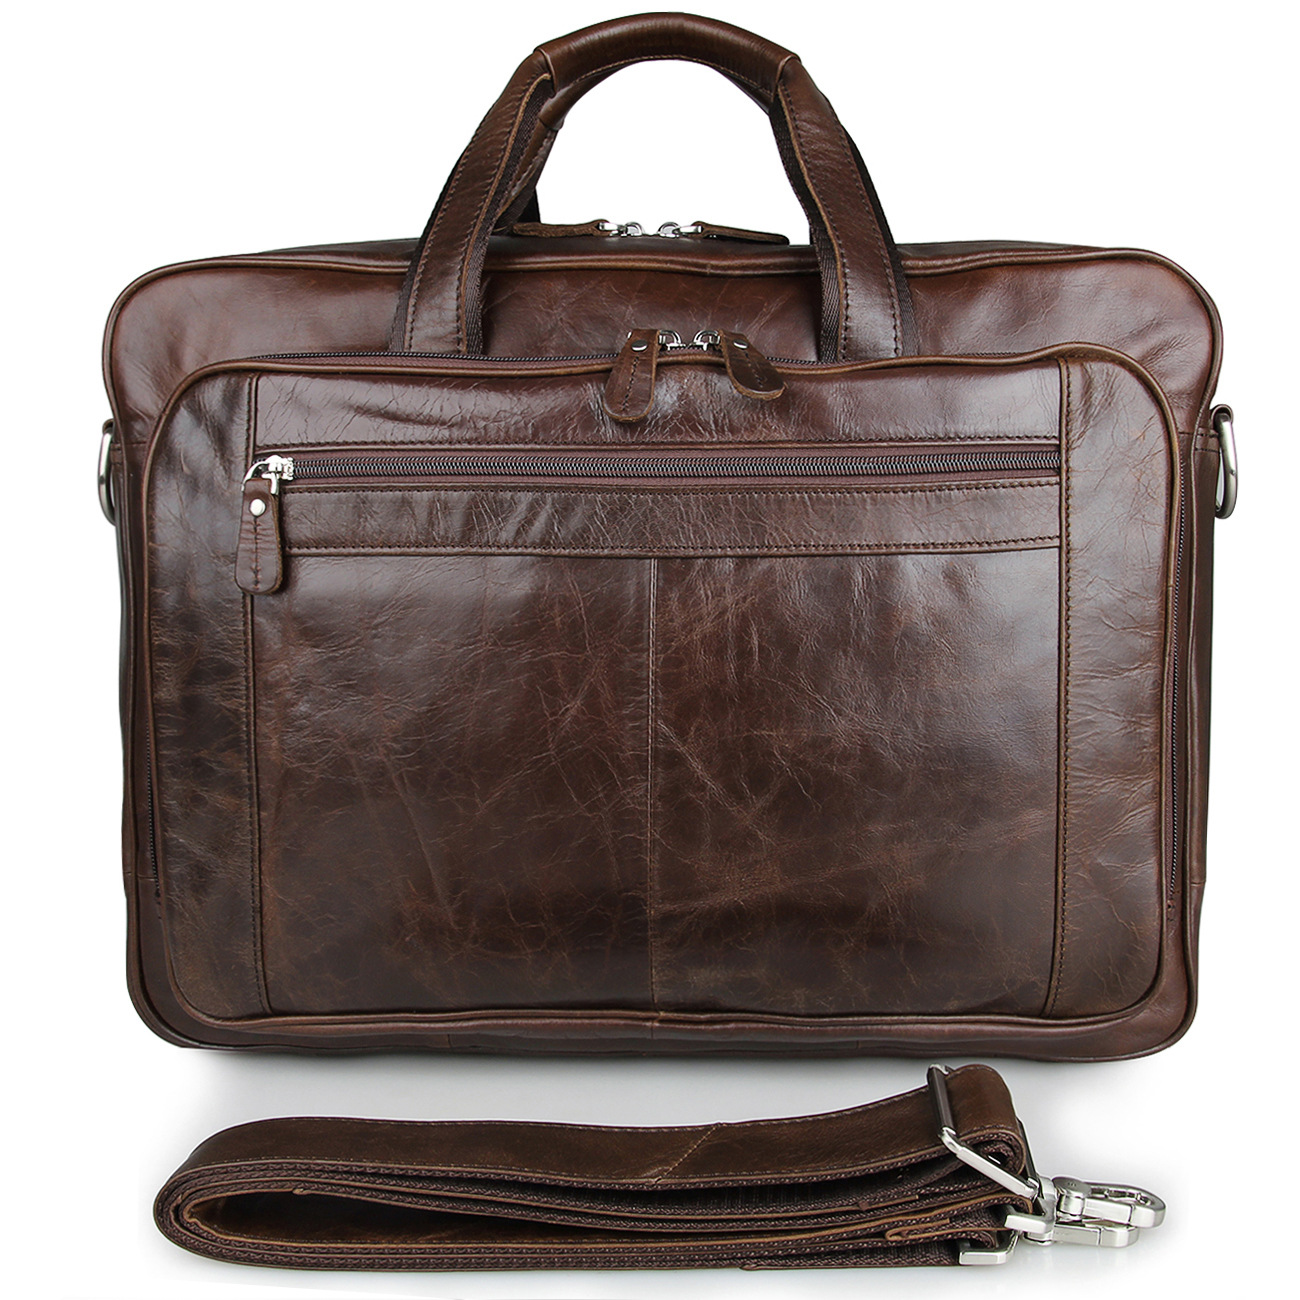 Europe American Retro Leather Men's Bag Oil Wax Leather Business Bag Briefcase 730-40 Large Leather Handbag 17 Inch Computer Bag